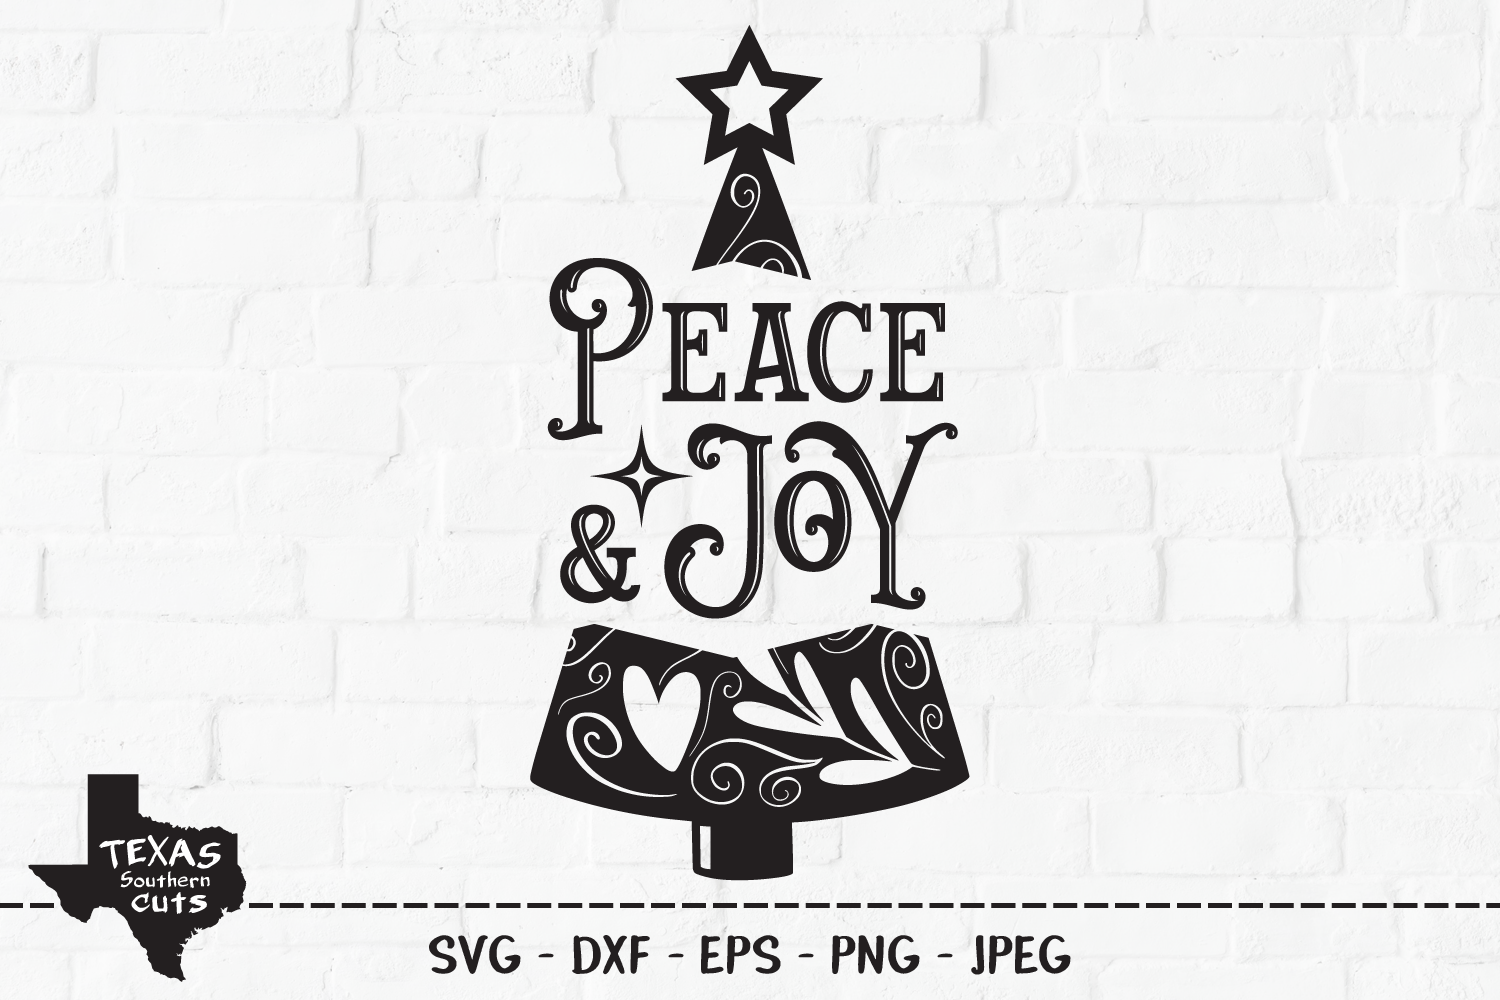 Download Free Peace Joy Christmas Tree Design Graphic By Texassoutherncuts for Cricut Explore, Silhouette and other cutting machines.